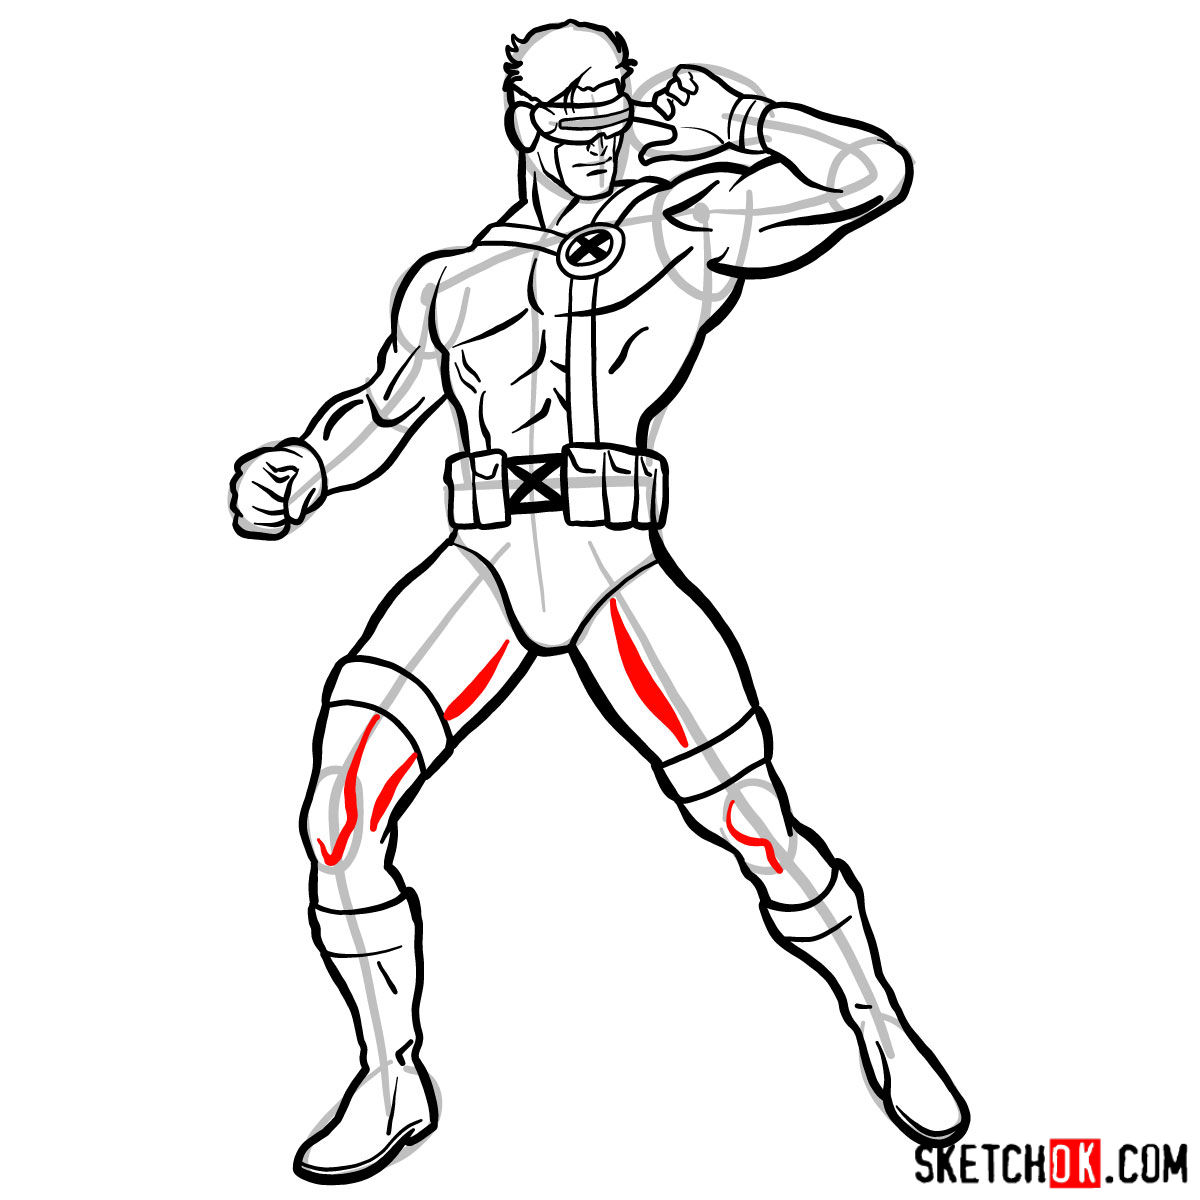 How to draw Cyclops from X-Men - step 15